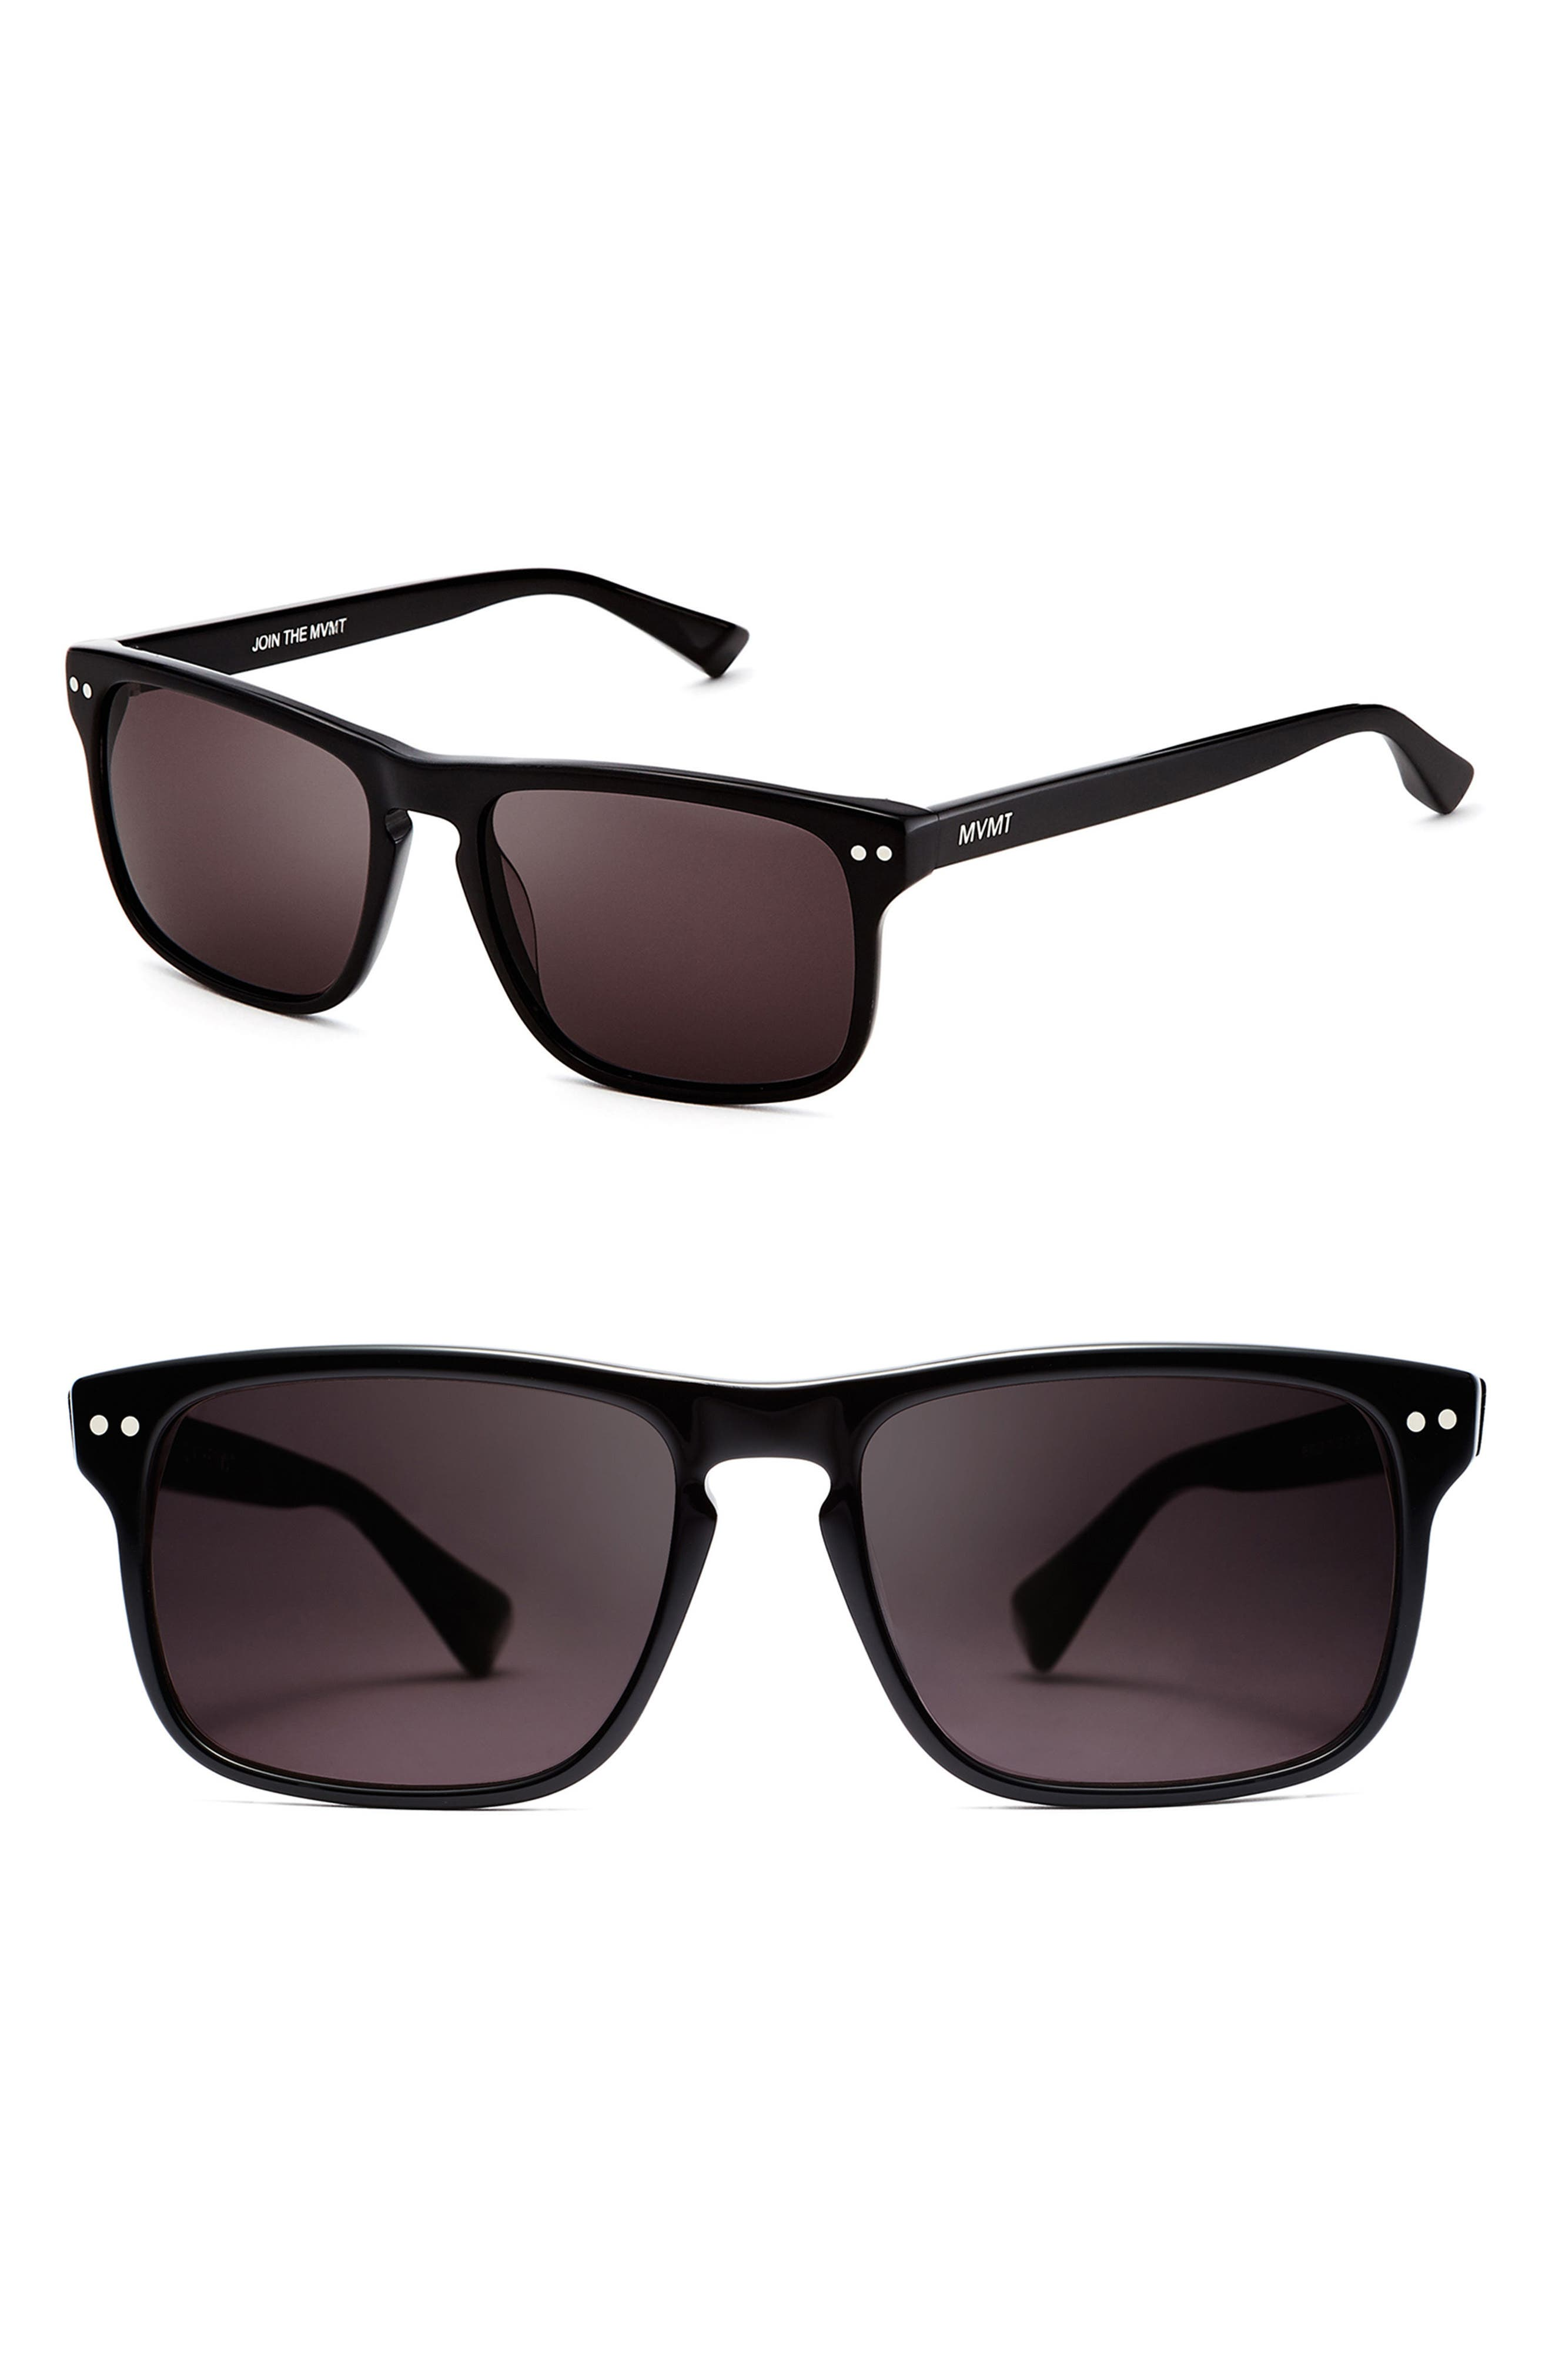 Reveler 57mm Polarized Sunglasses,                         Main,                         color, BLACK